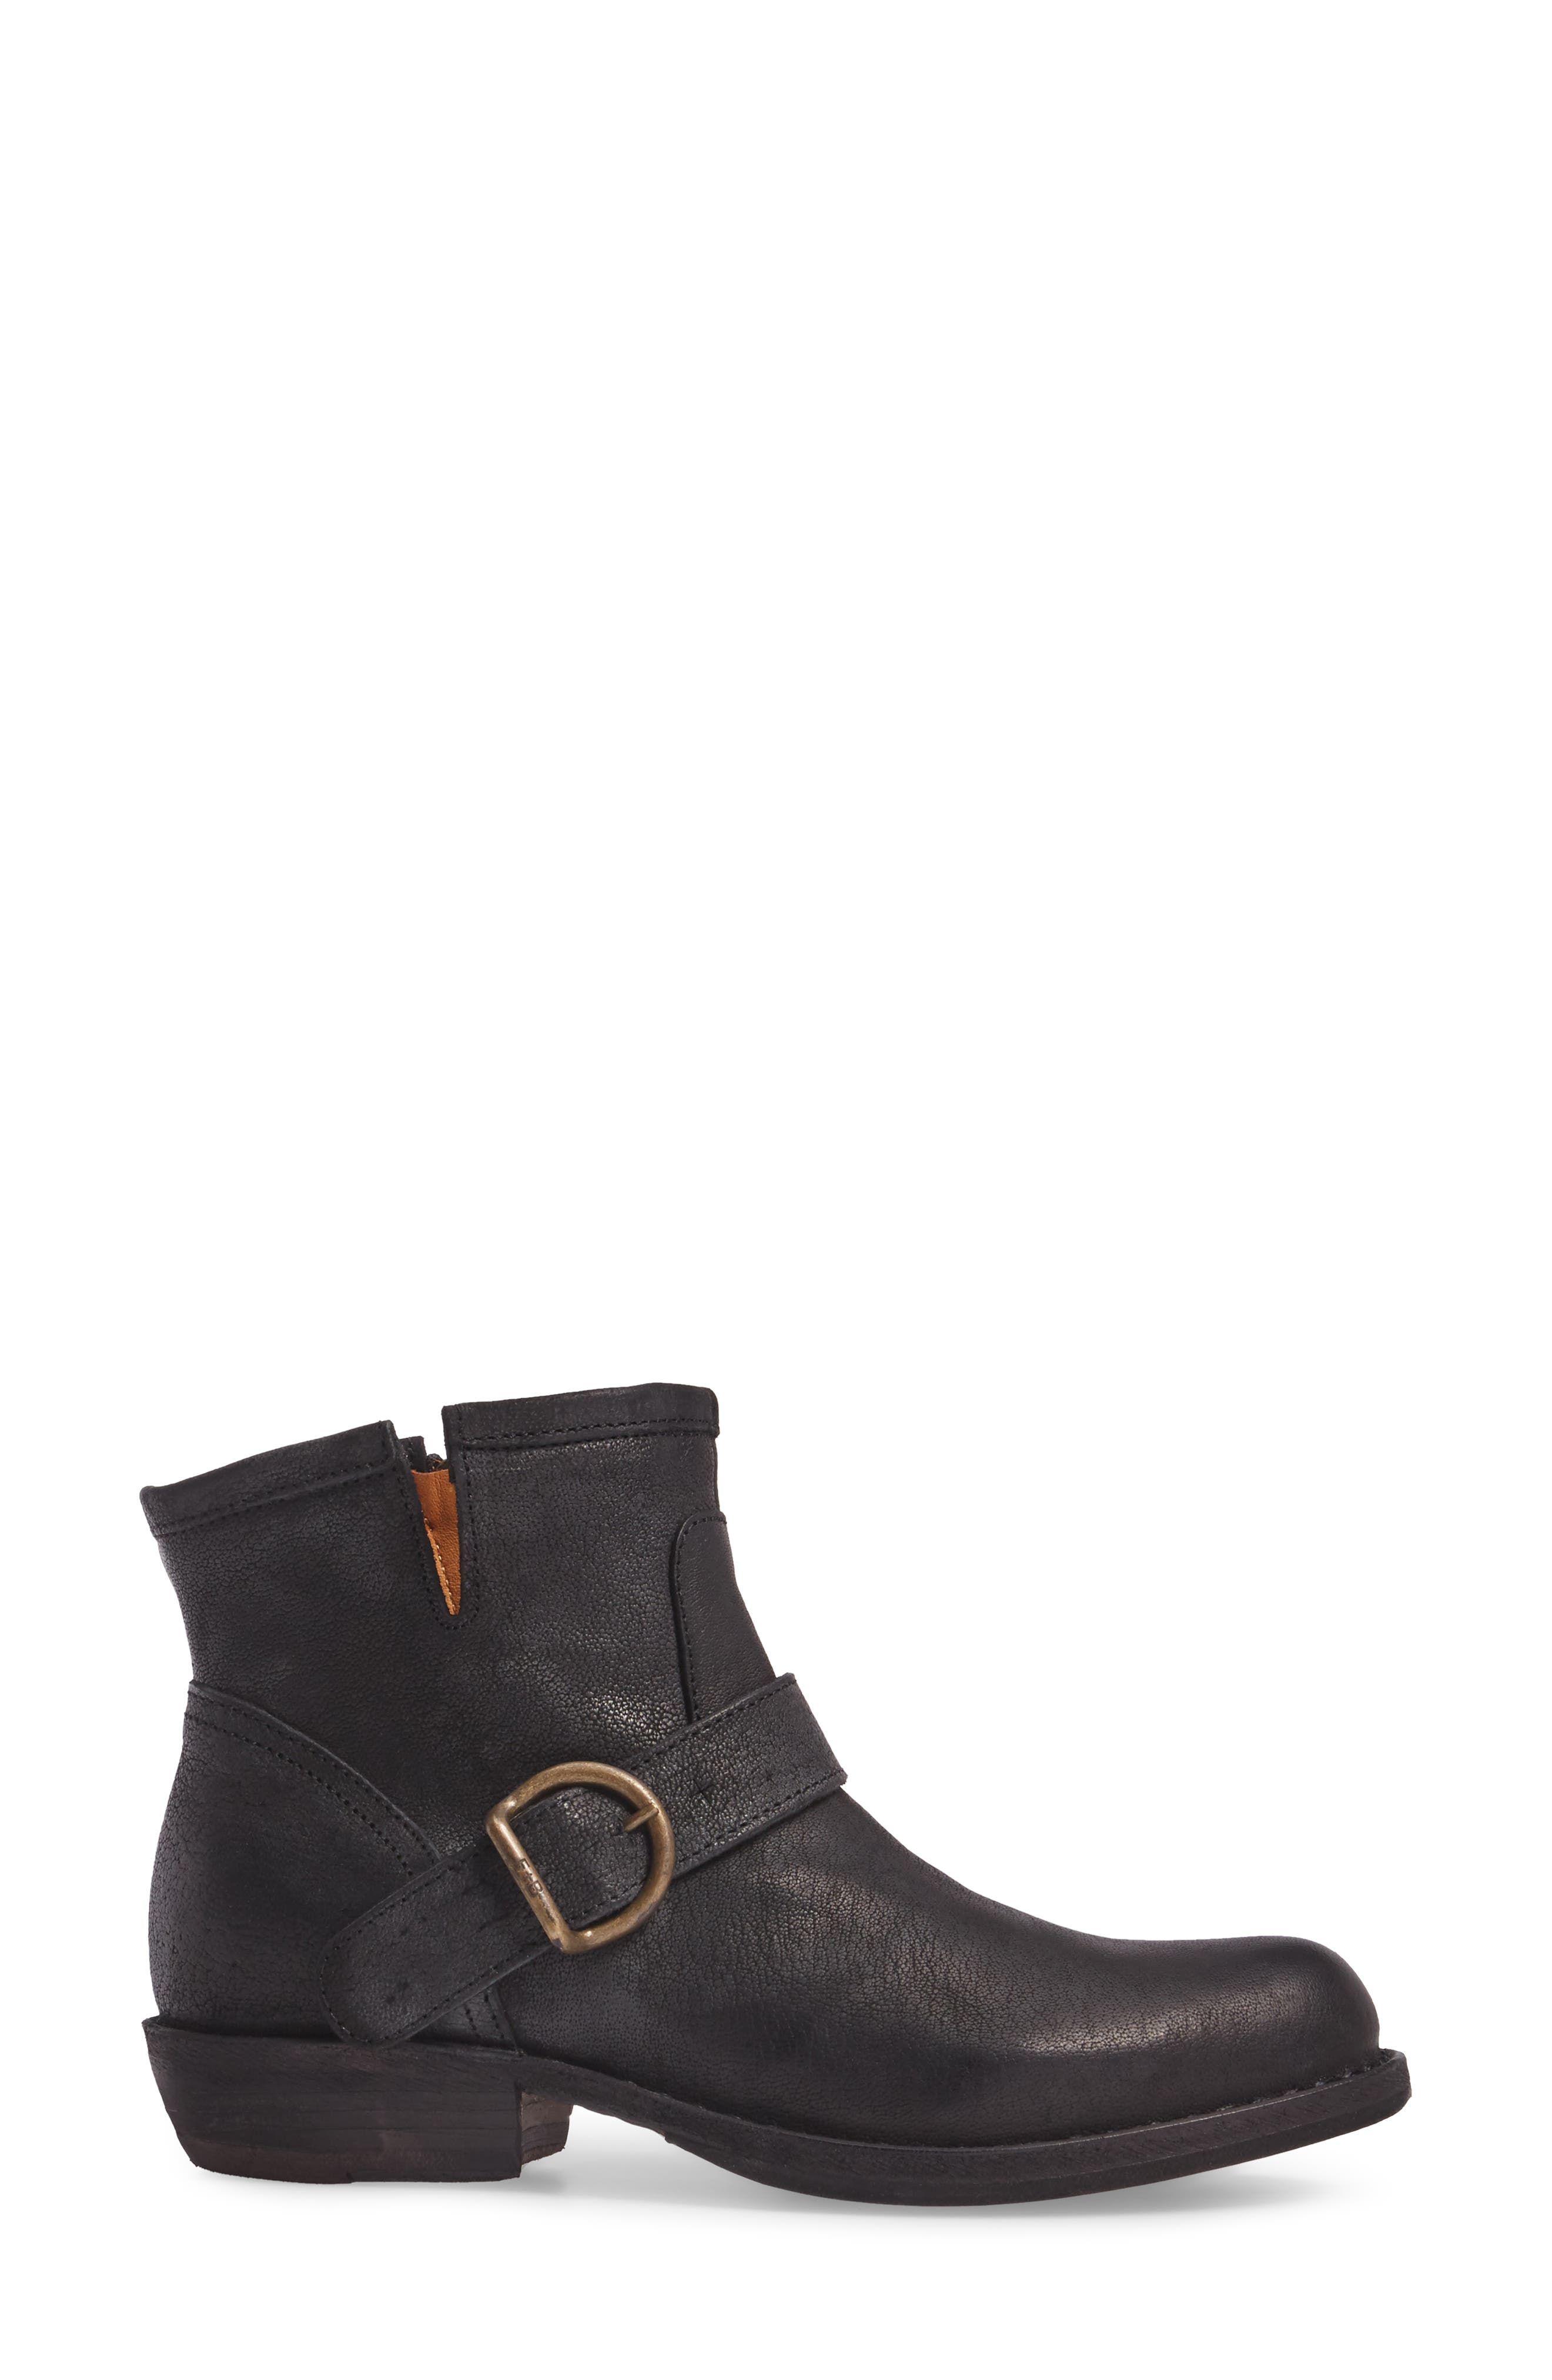 FIORENTINI + BAKER,                             'Chad' Textured Leather Bootie,                             Alternate thumbnail 3, color,                             002